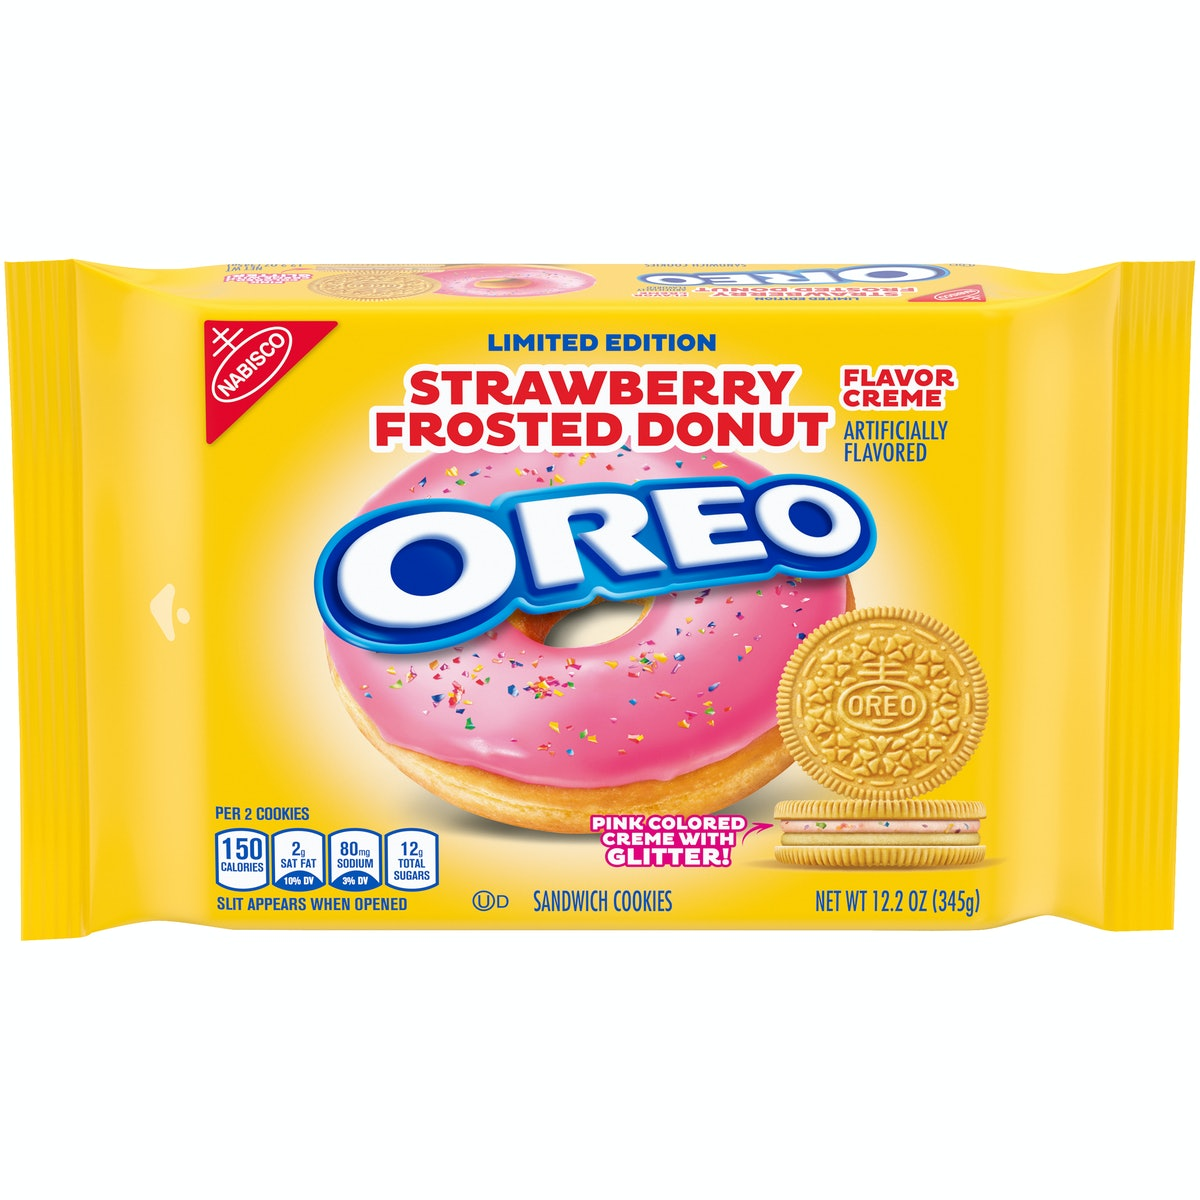 Oreo's new Strawberry Frosted Donut flavor features two different flavored cremes.